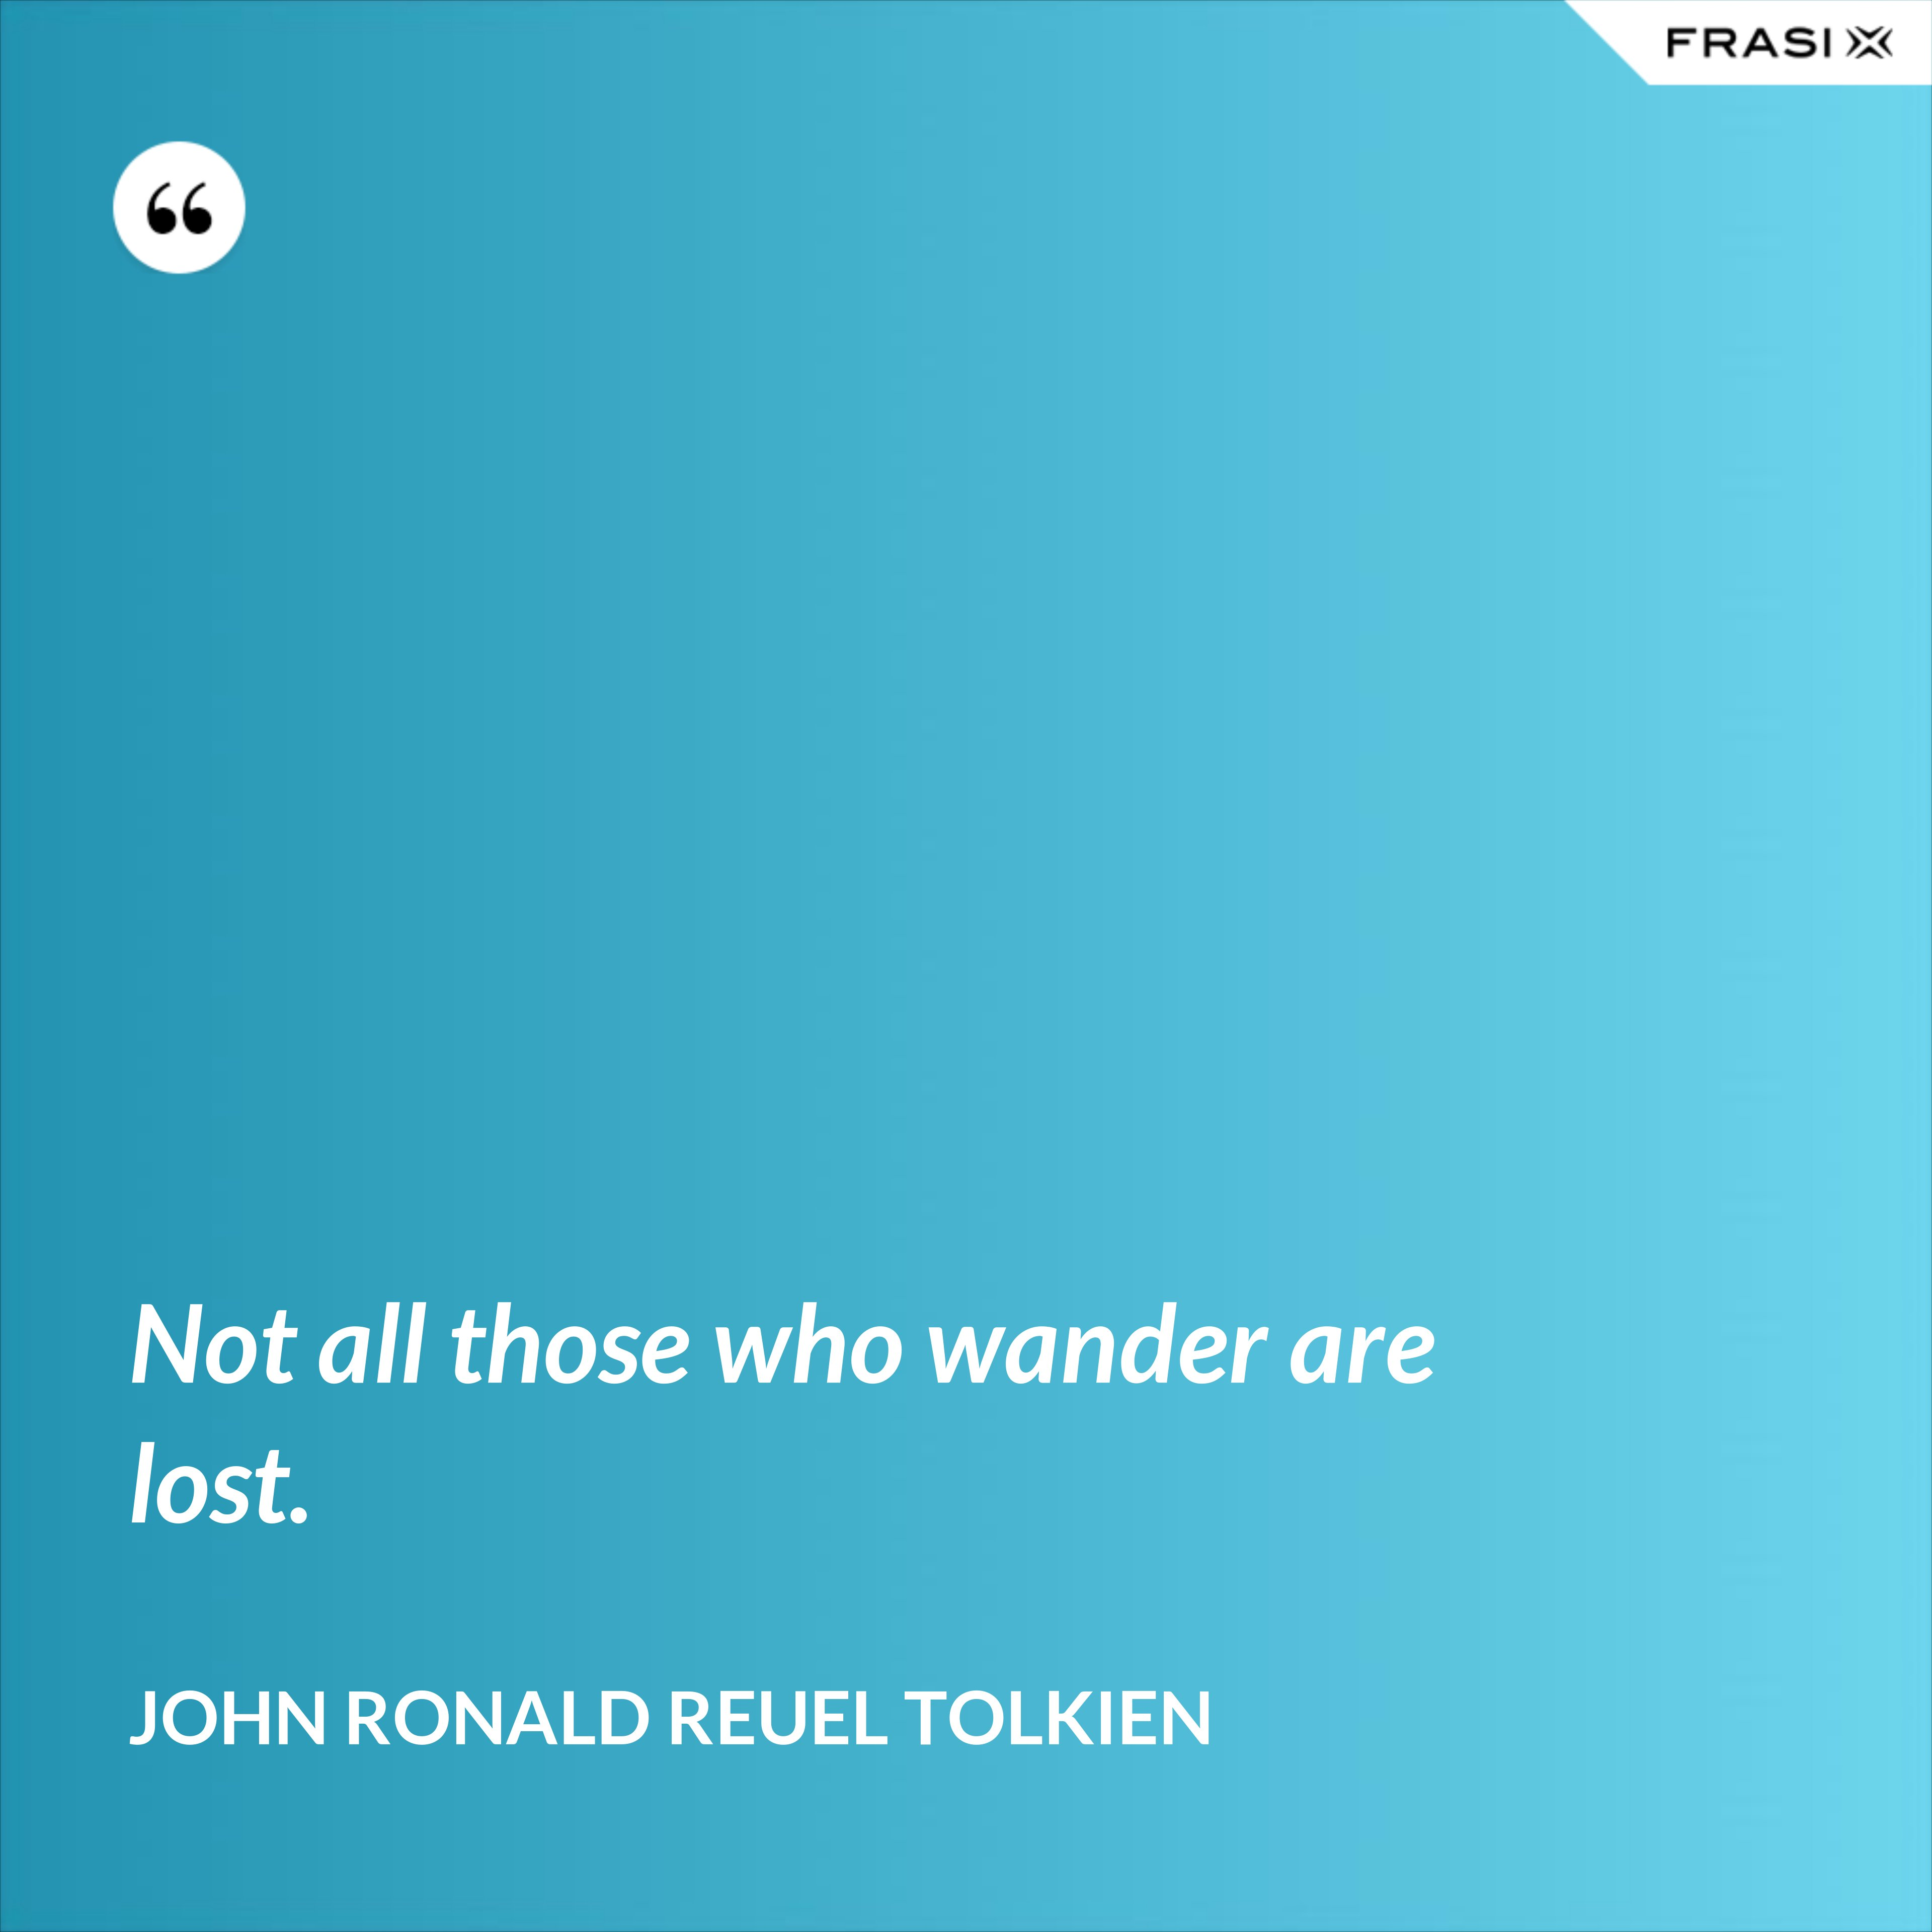 Not all those who wander are lost. - John Ronald Reuel Tolkien